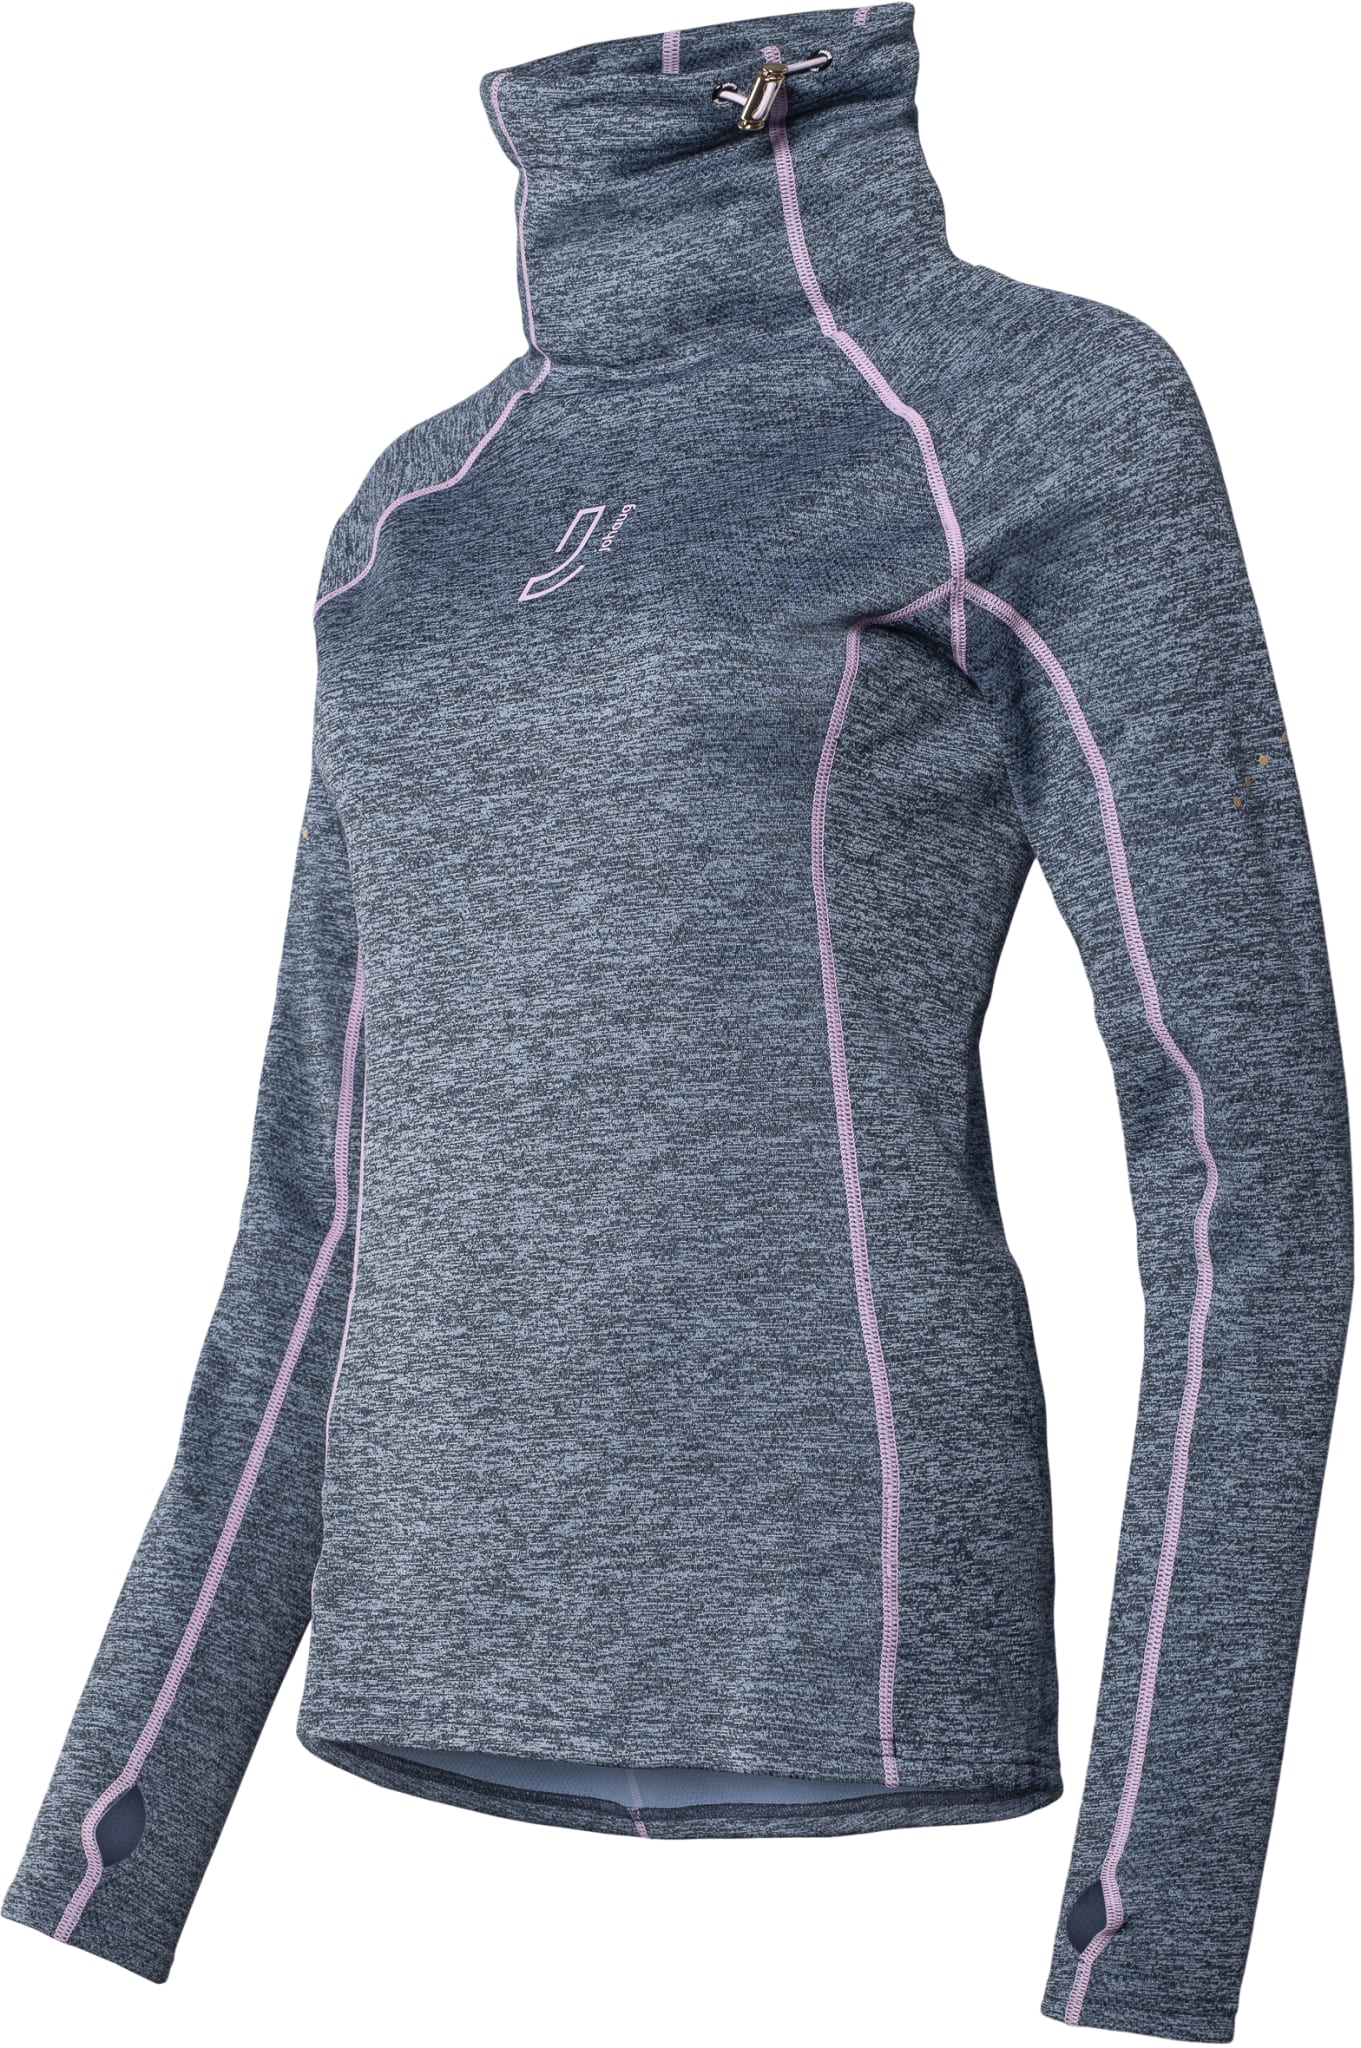 Verve Turtleneck Long Sleeve